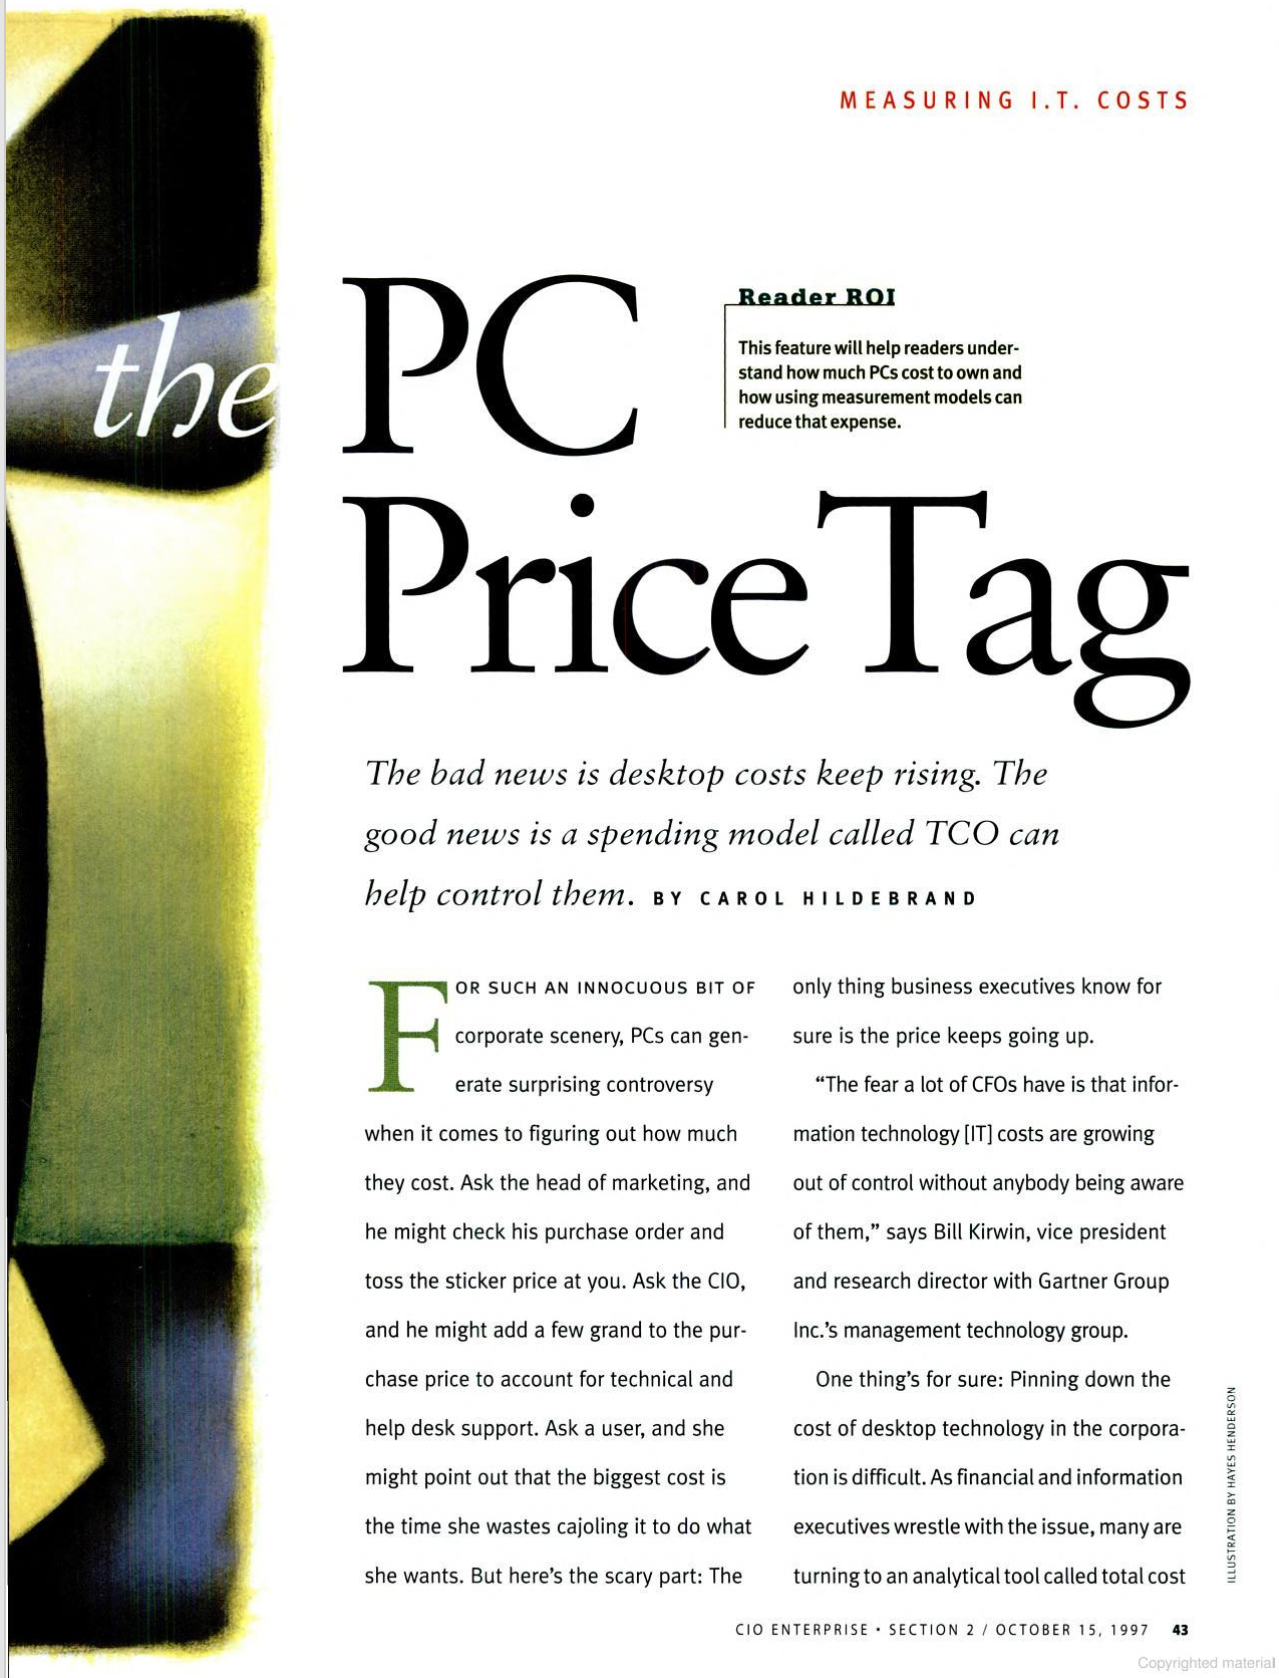 """The PC Price Tag """"The bad news is desktop costs keep rising. The good news is a spending model called TCO can help control them"""""""